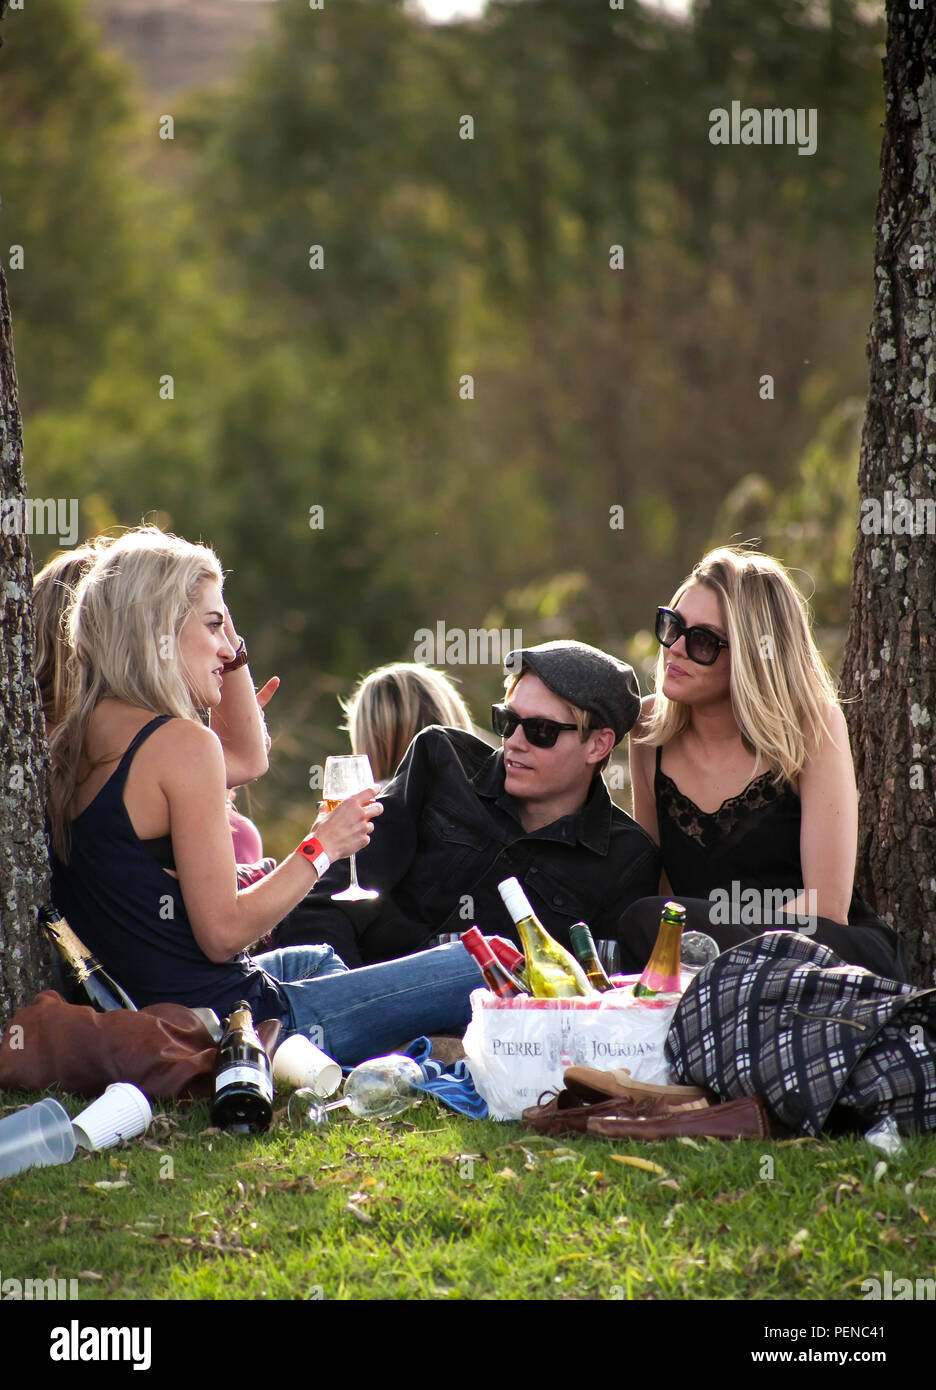 Johannesburg, South Africa - 10 May, 2014: People relaxing and eating in a park. Stock Photo